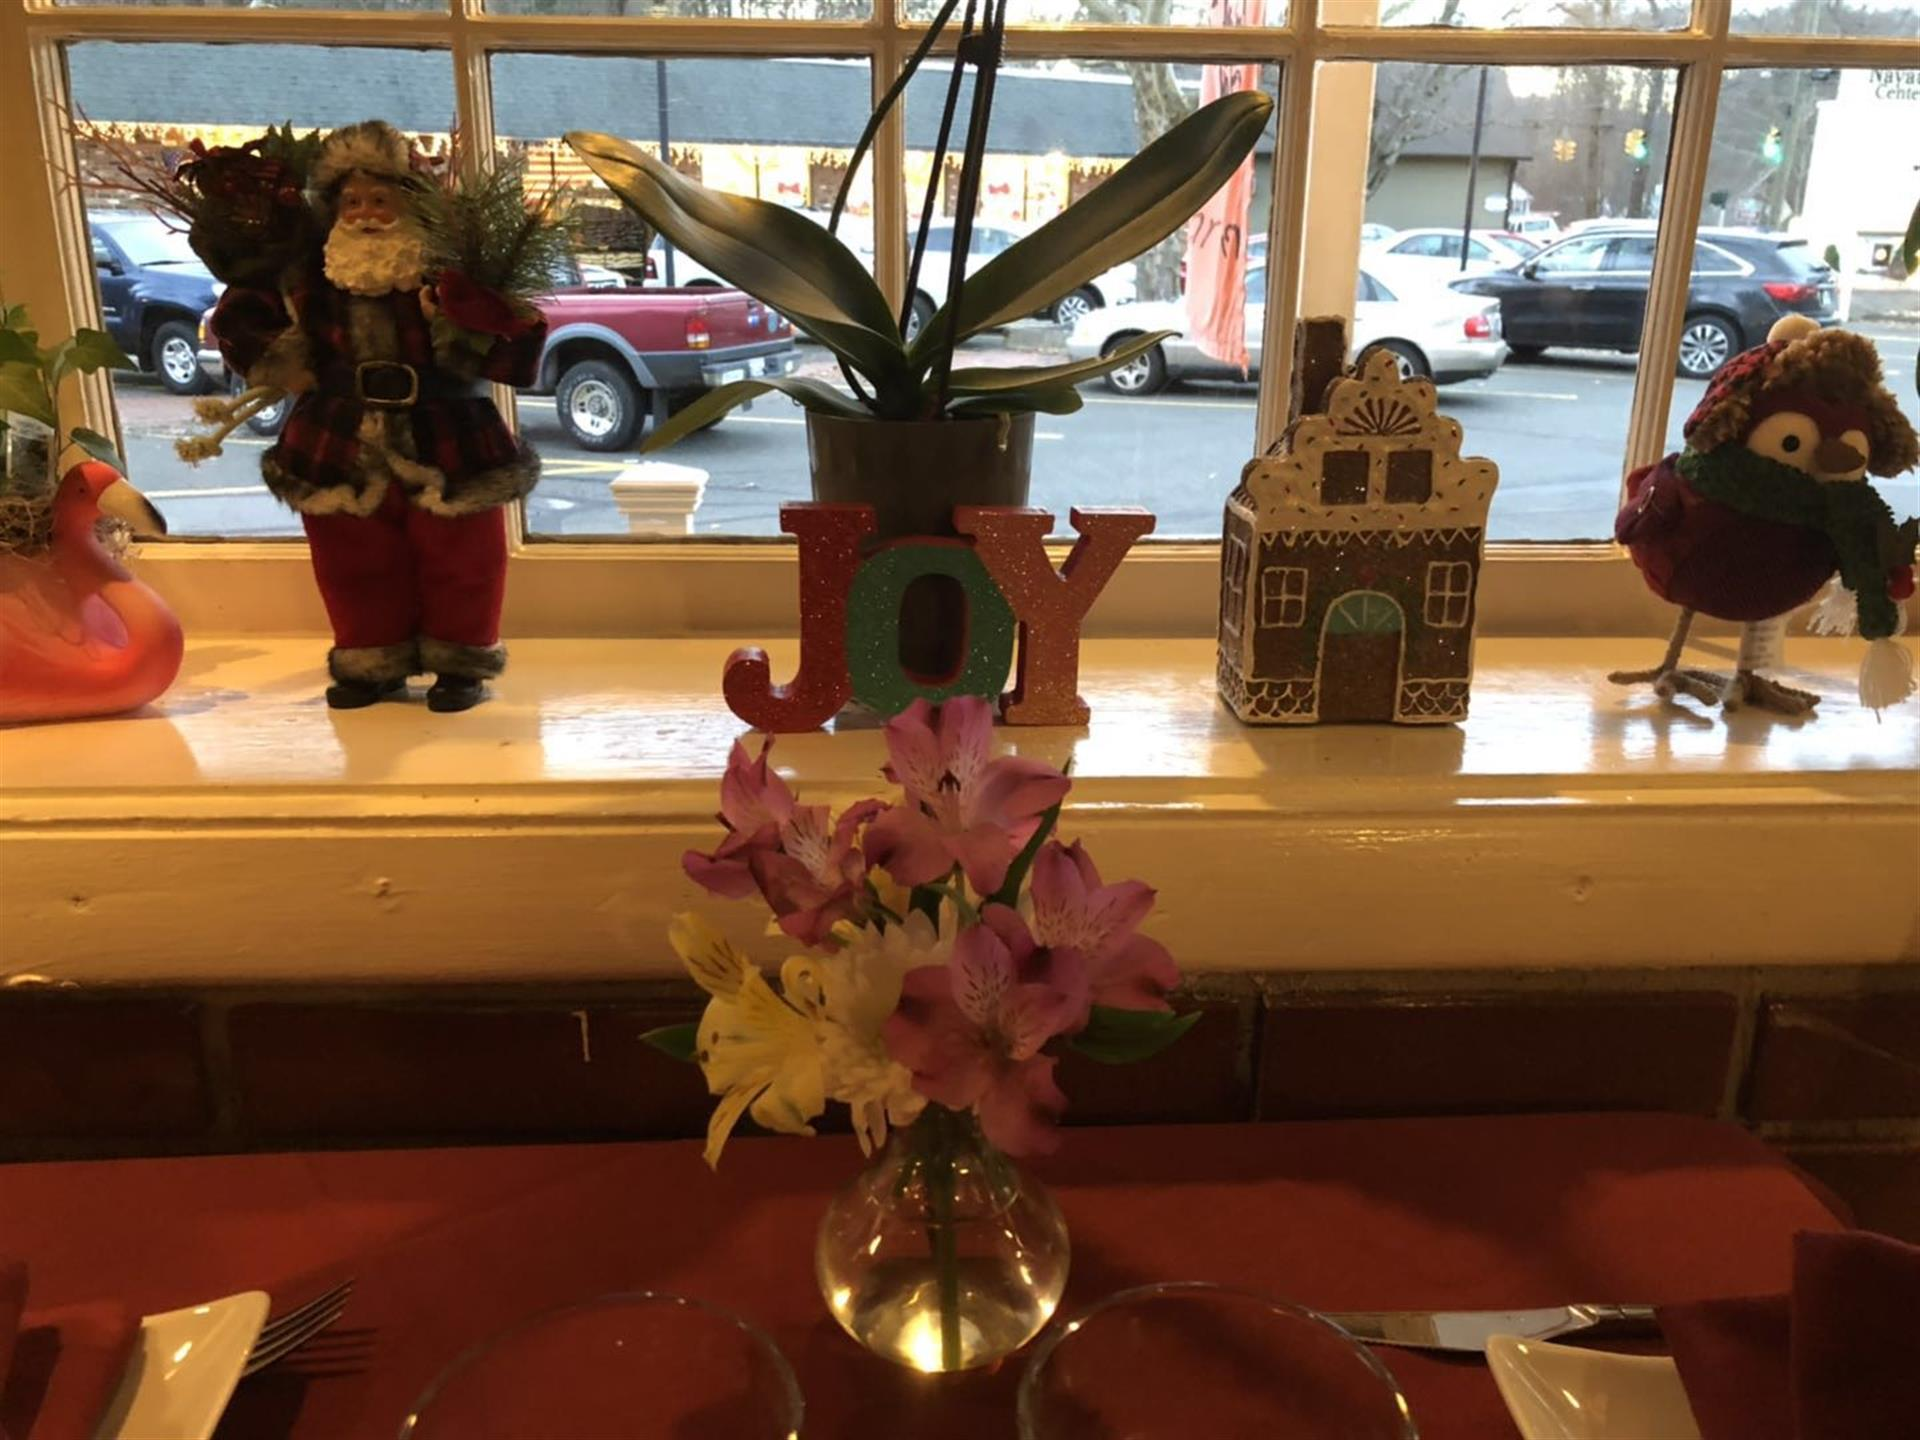 flowers on table next to window